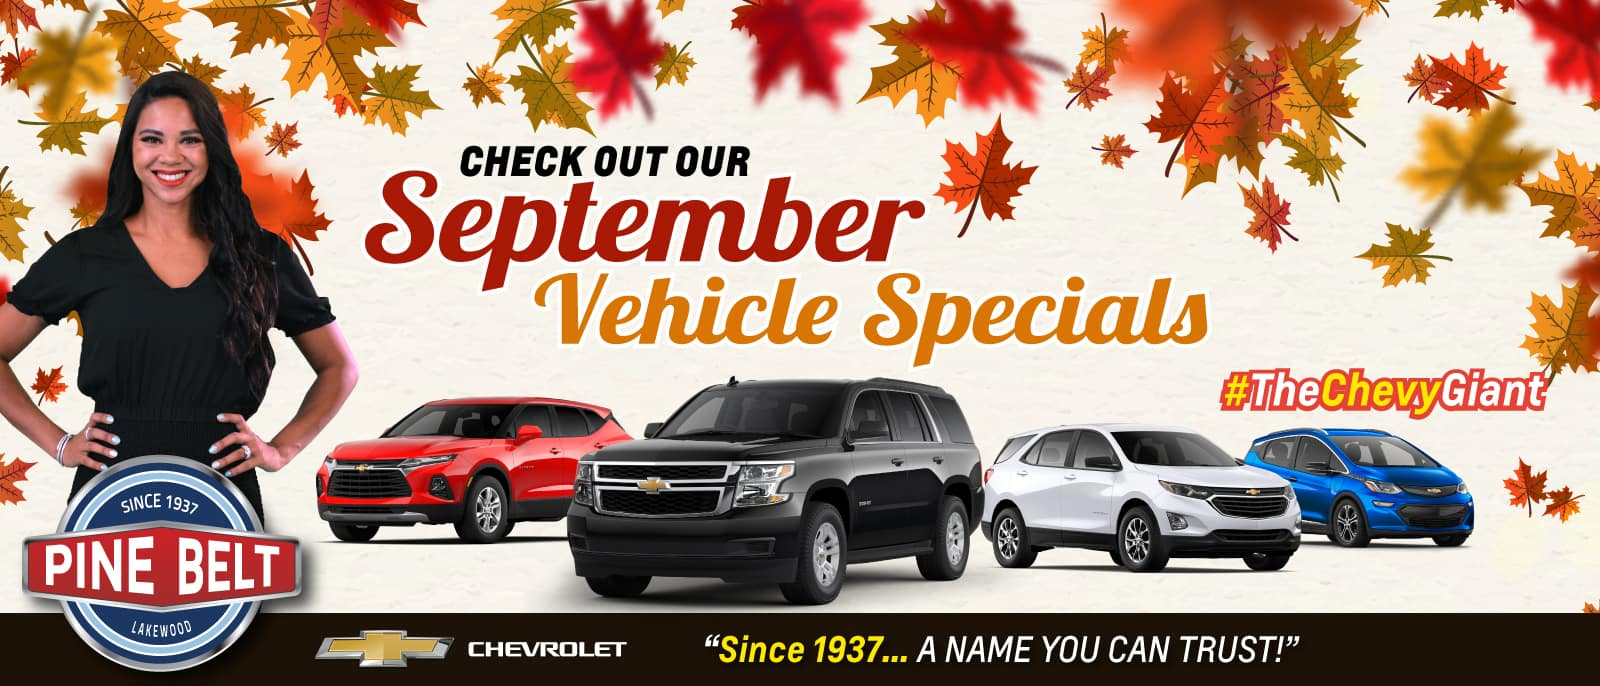 PBE-1997-September-Monthly-Specials_CHEVY